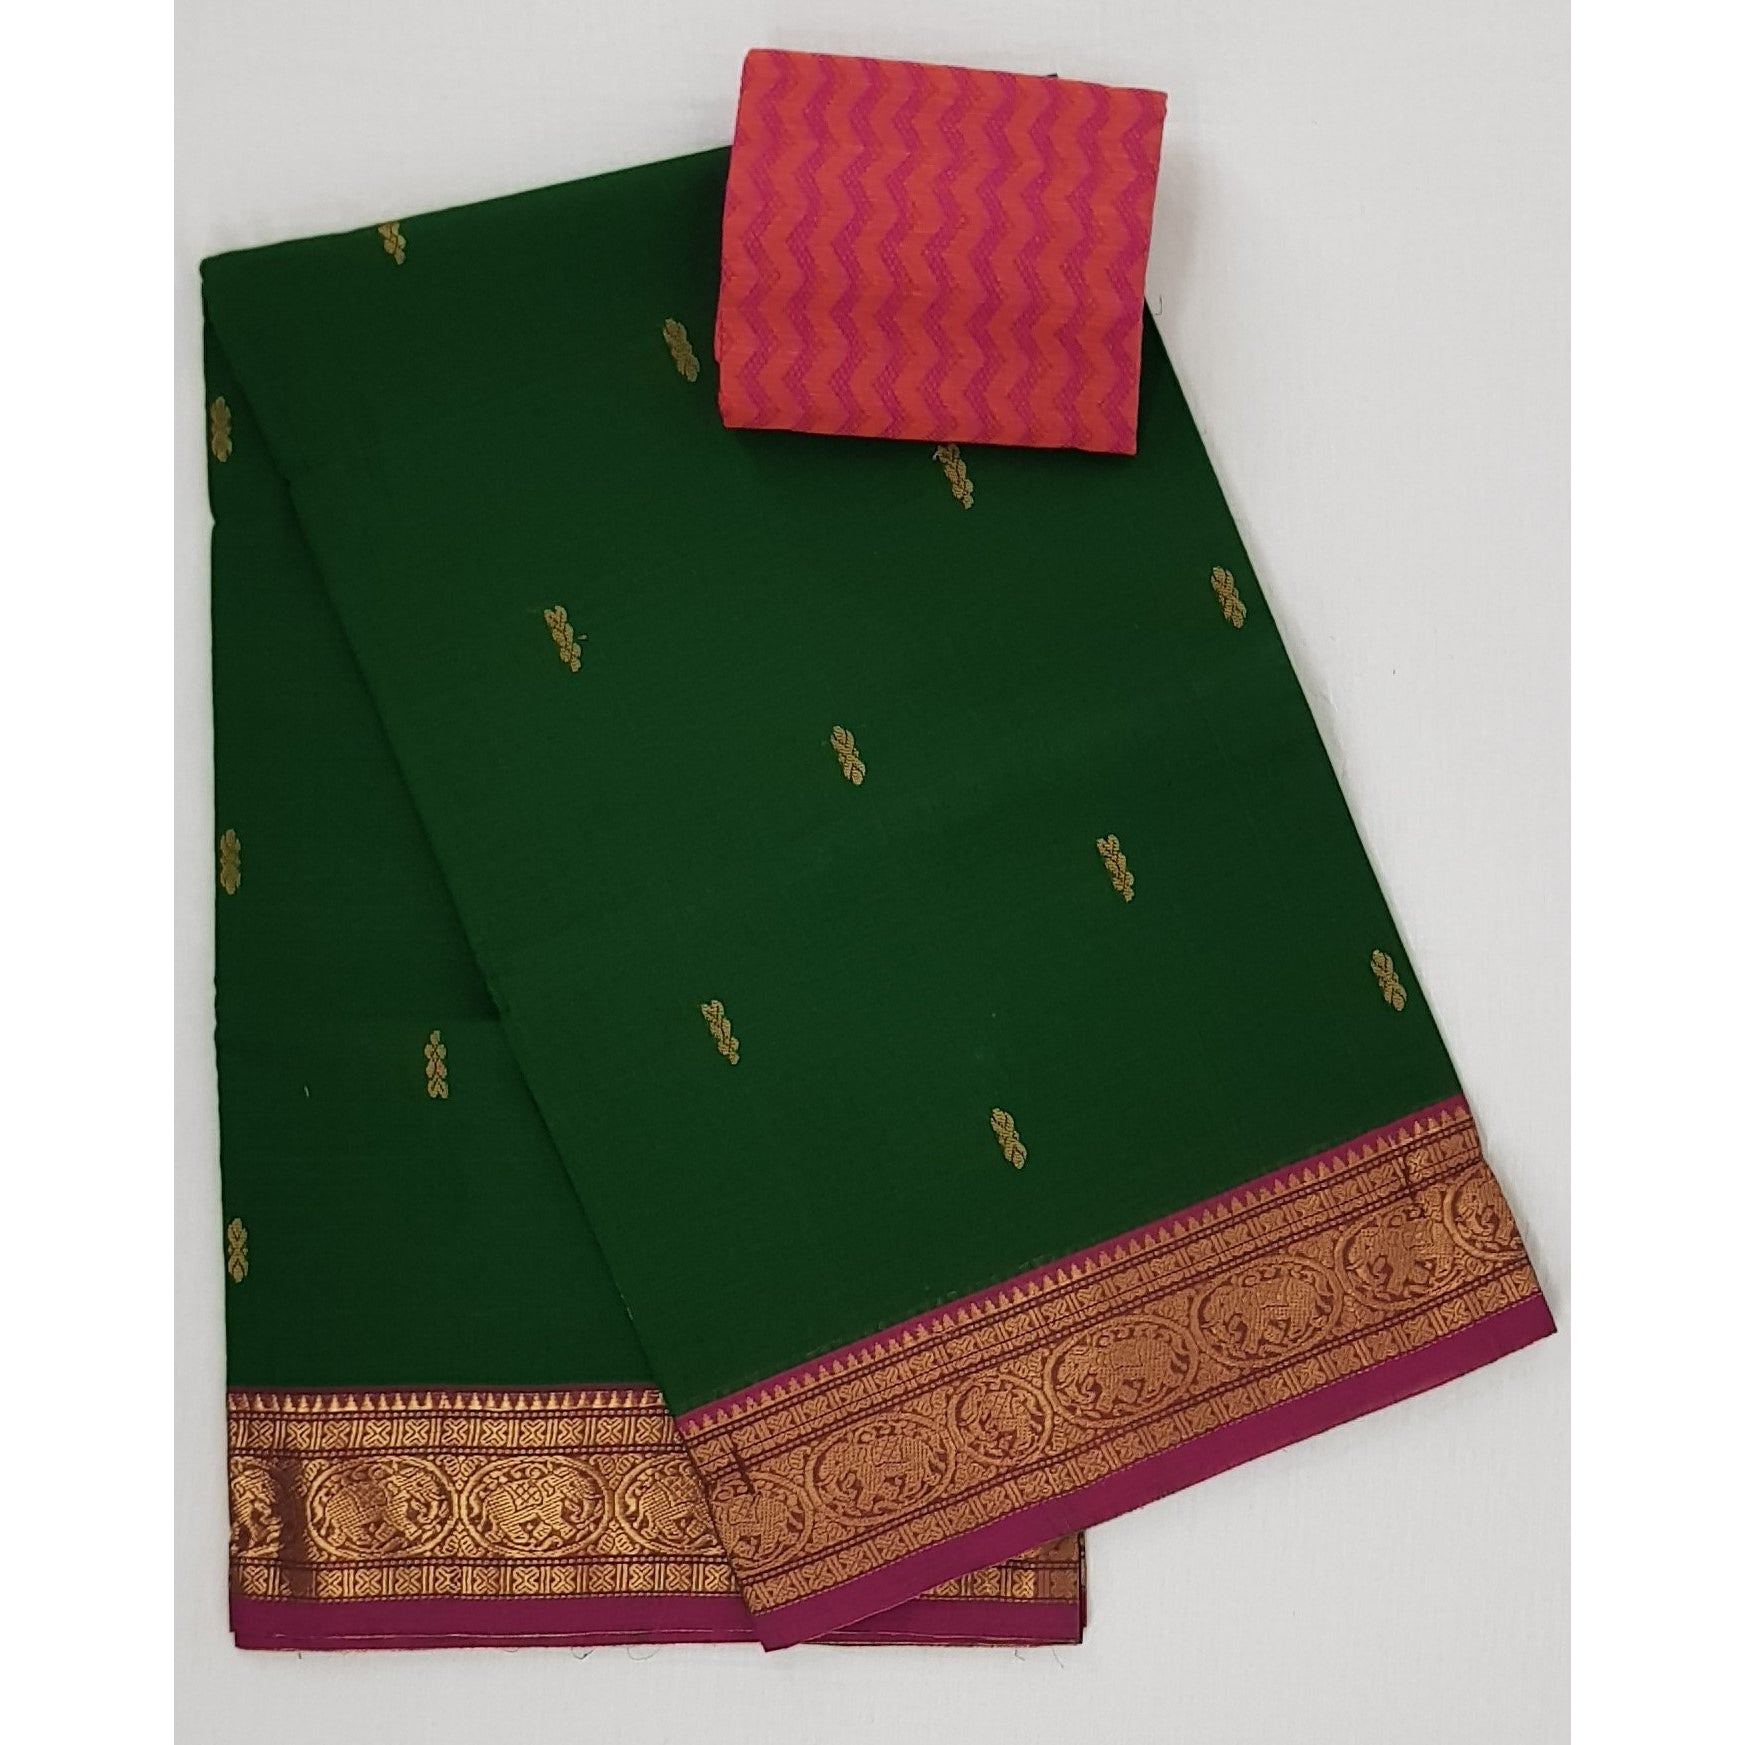 Green color Kanchi cotton saree with zari border - Vinshika